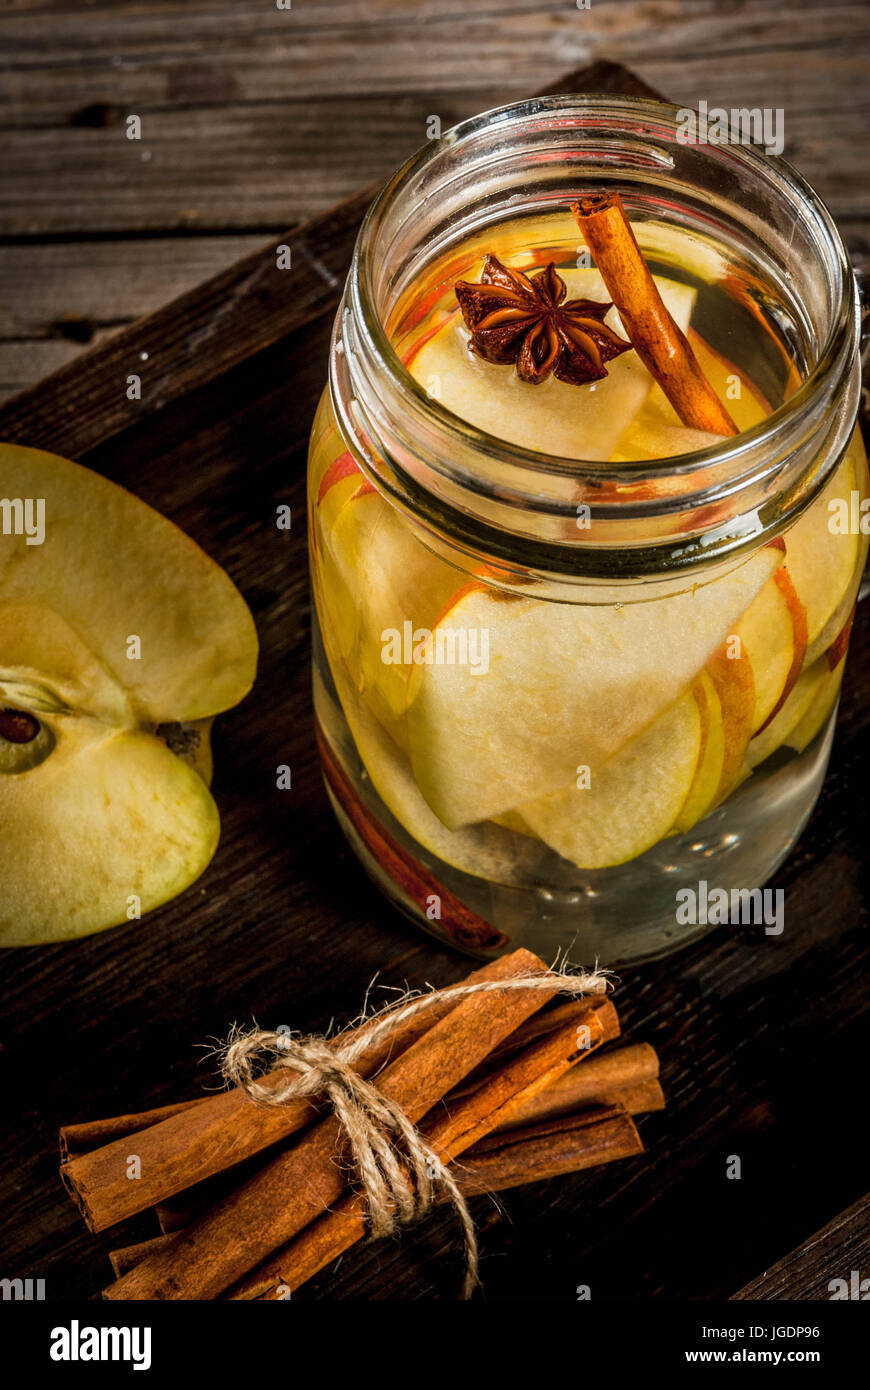 Autumn Detox Water With Apple Cinnamon And Pear In Mason Jar On A Rustic Old Wood Background Ingredients Close View